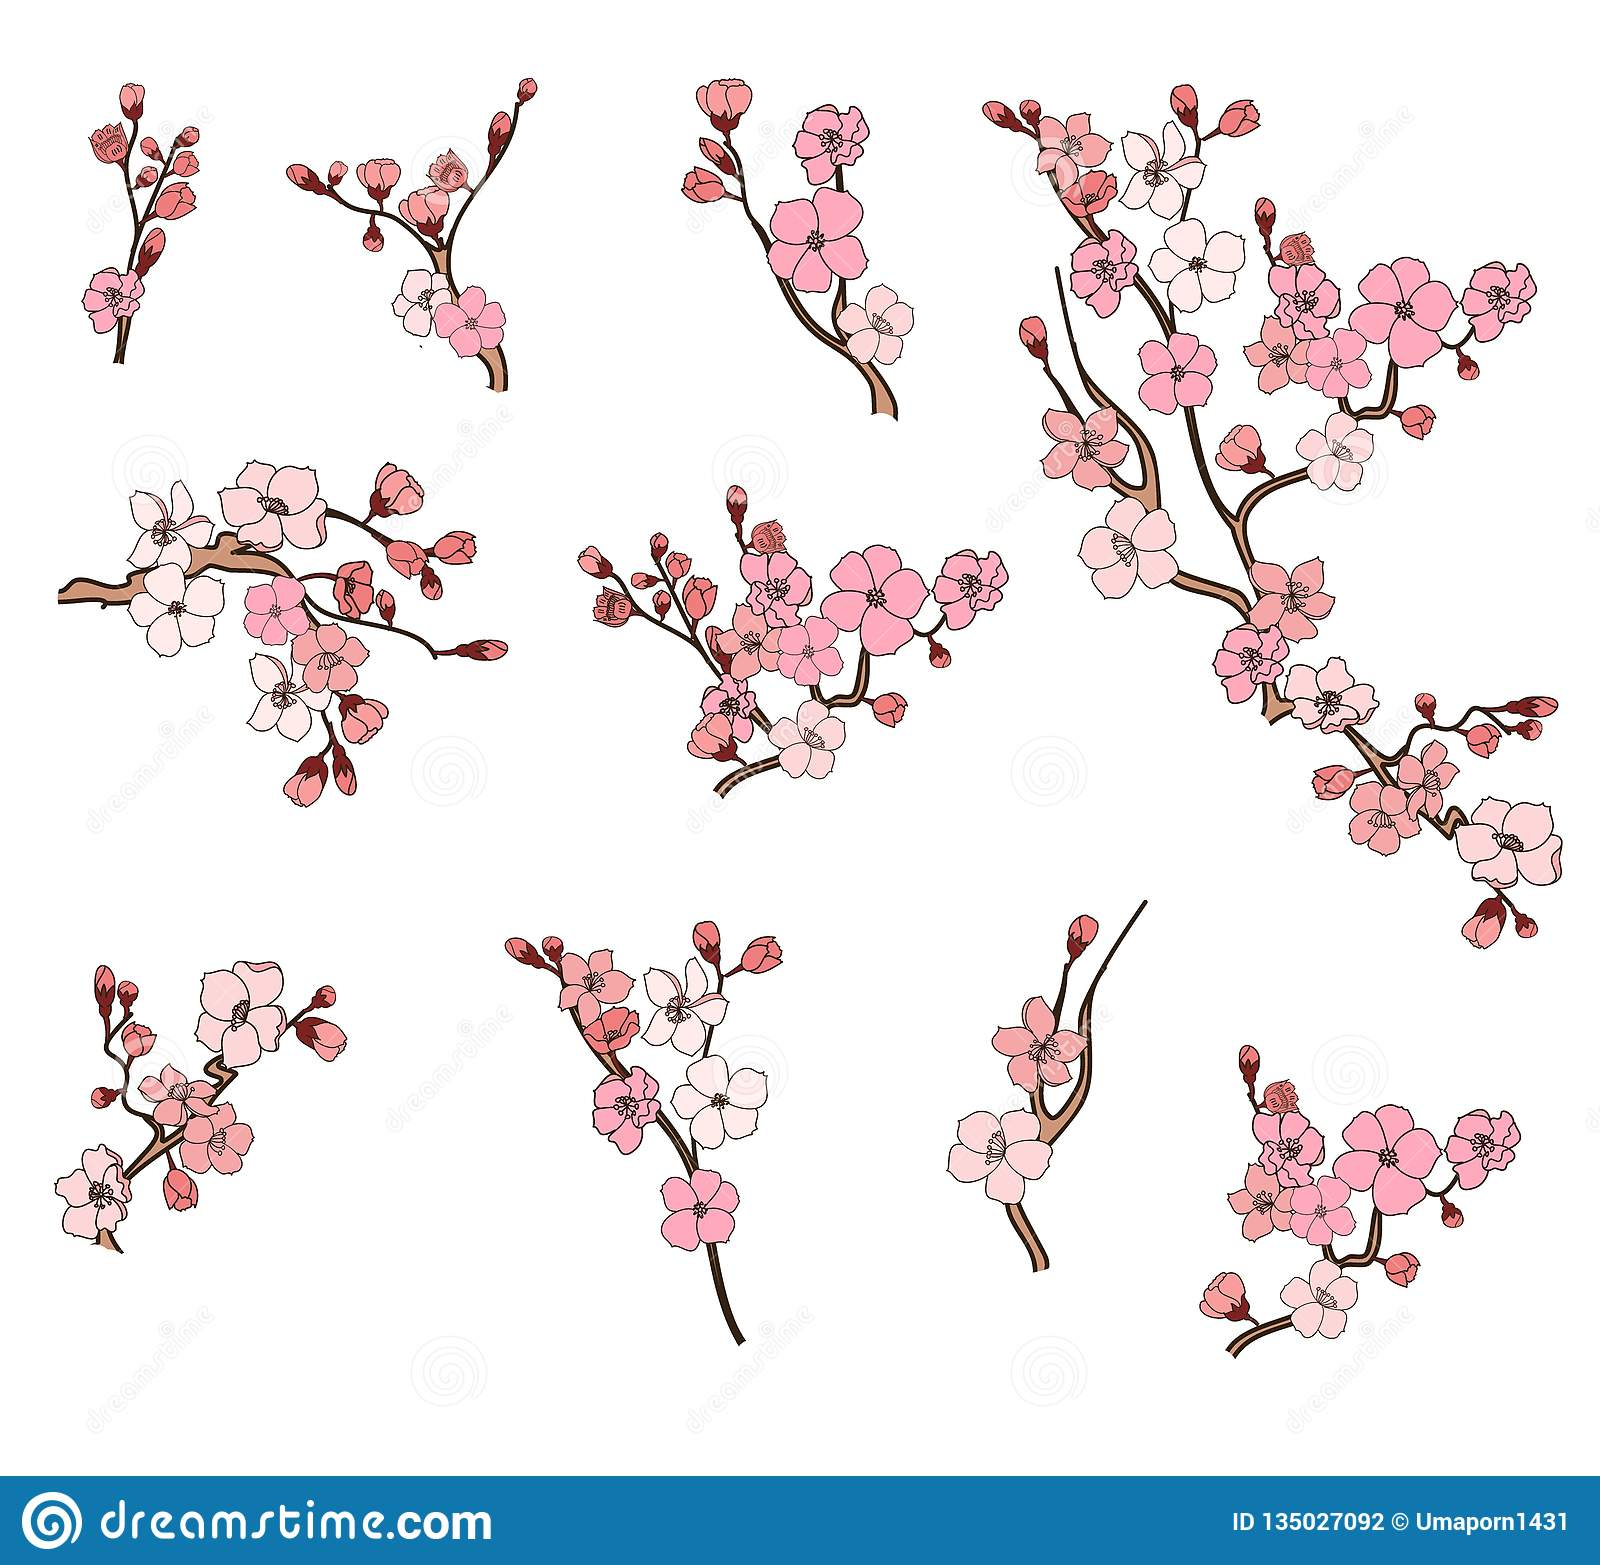 Cherry Blossom Vector And Illustration Design On White Background